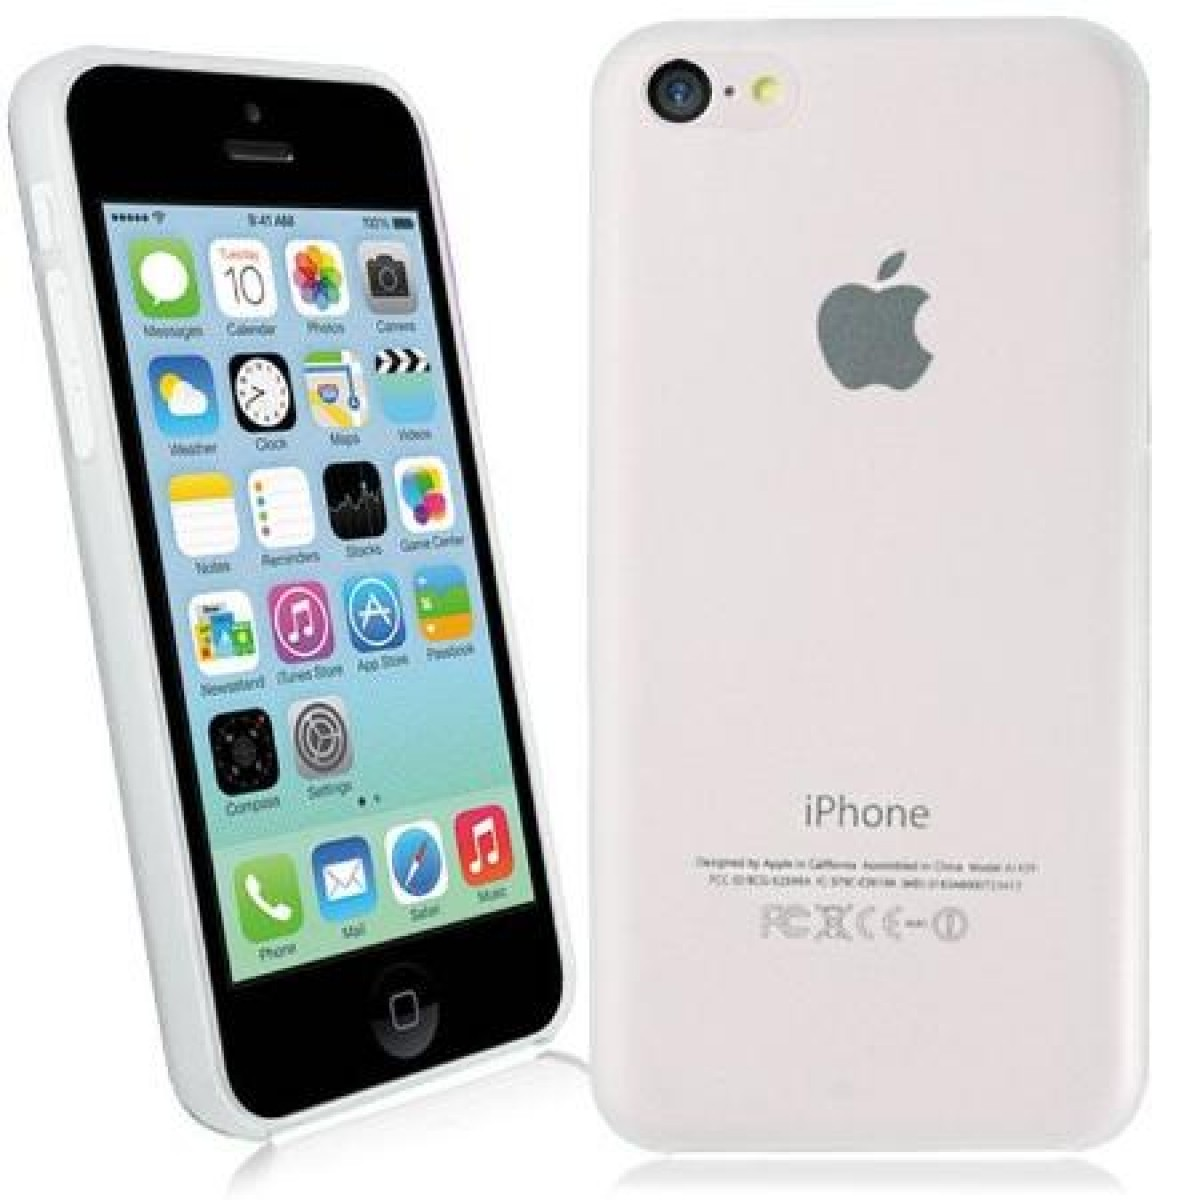 iPhone silicone phone cases for iphone 5 : Inu00edcio / iPhone / iPhone 5C / Capa Case Ultra Slim iPhone 5c Fosca 0 ...